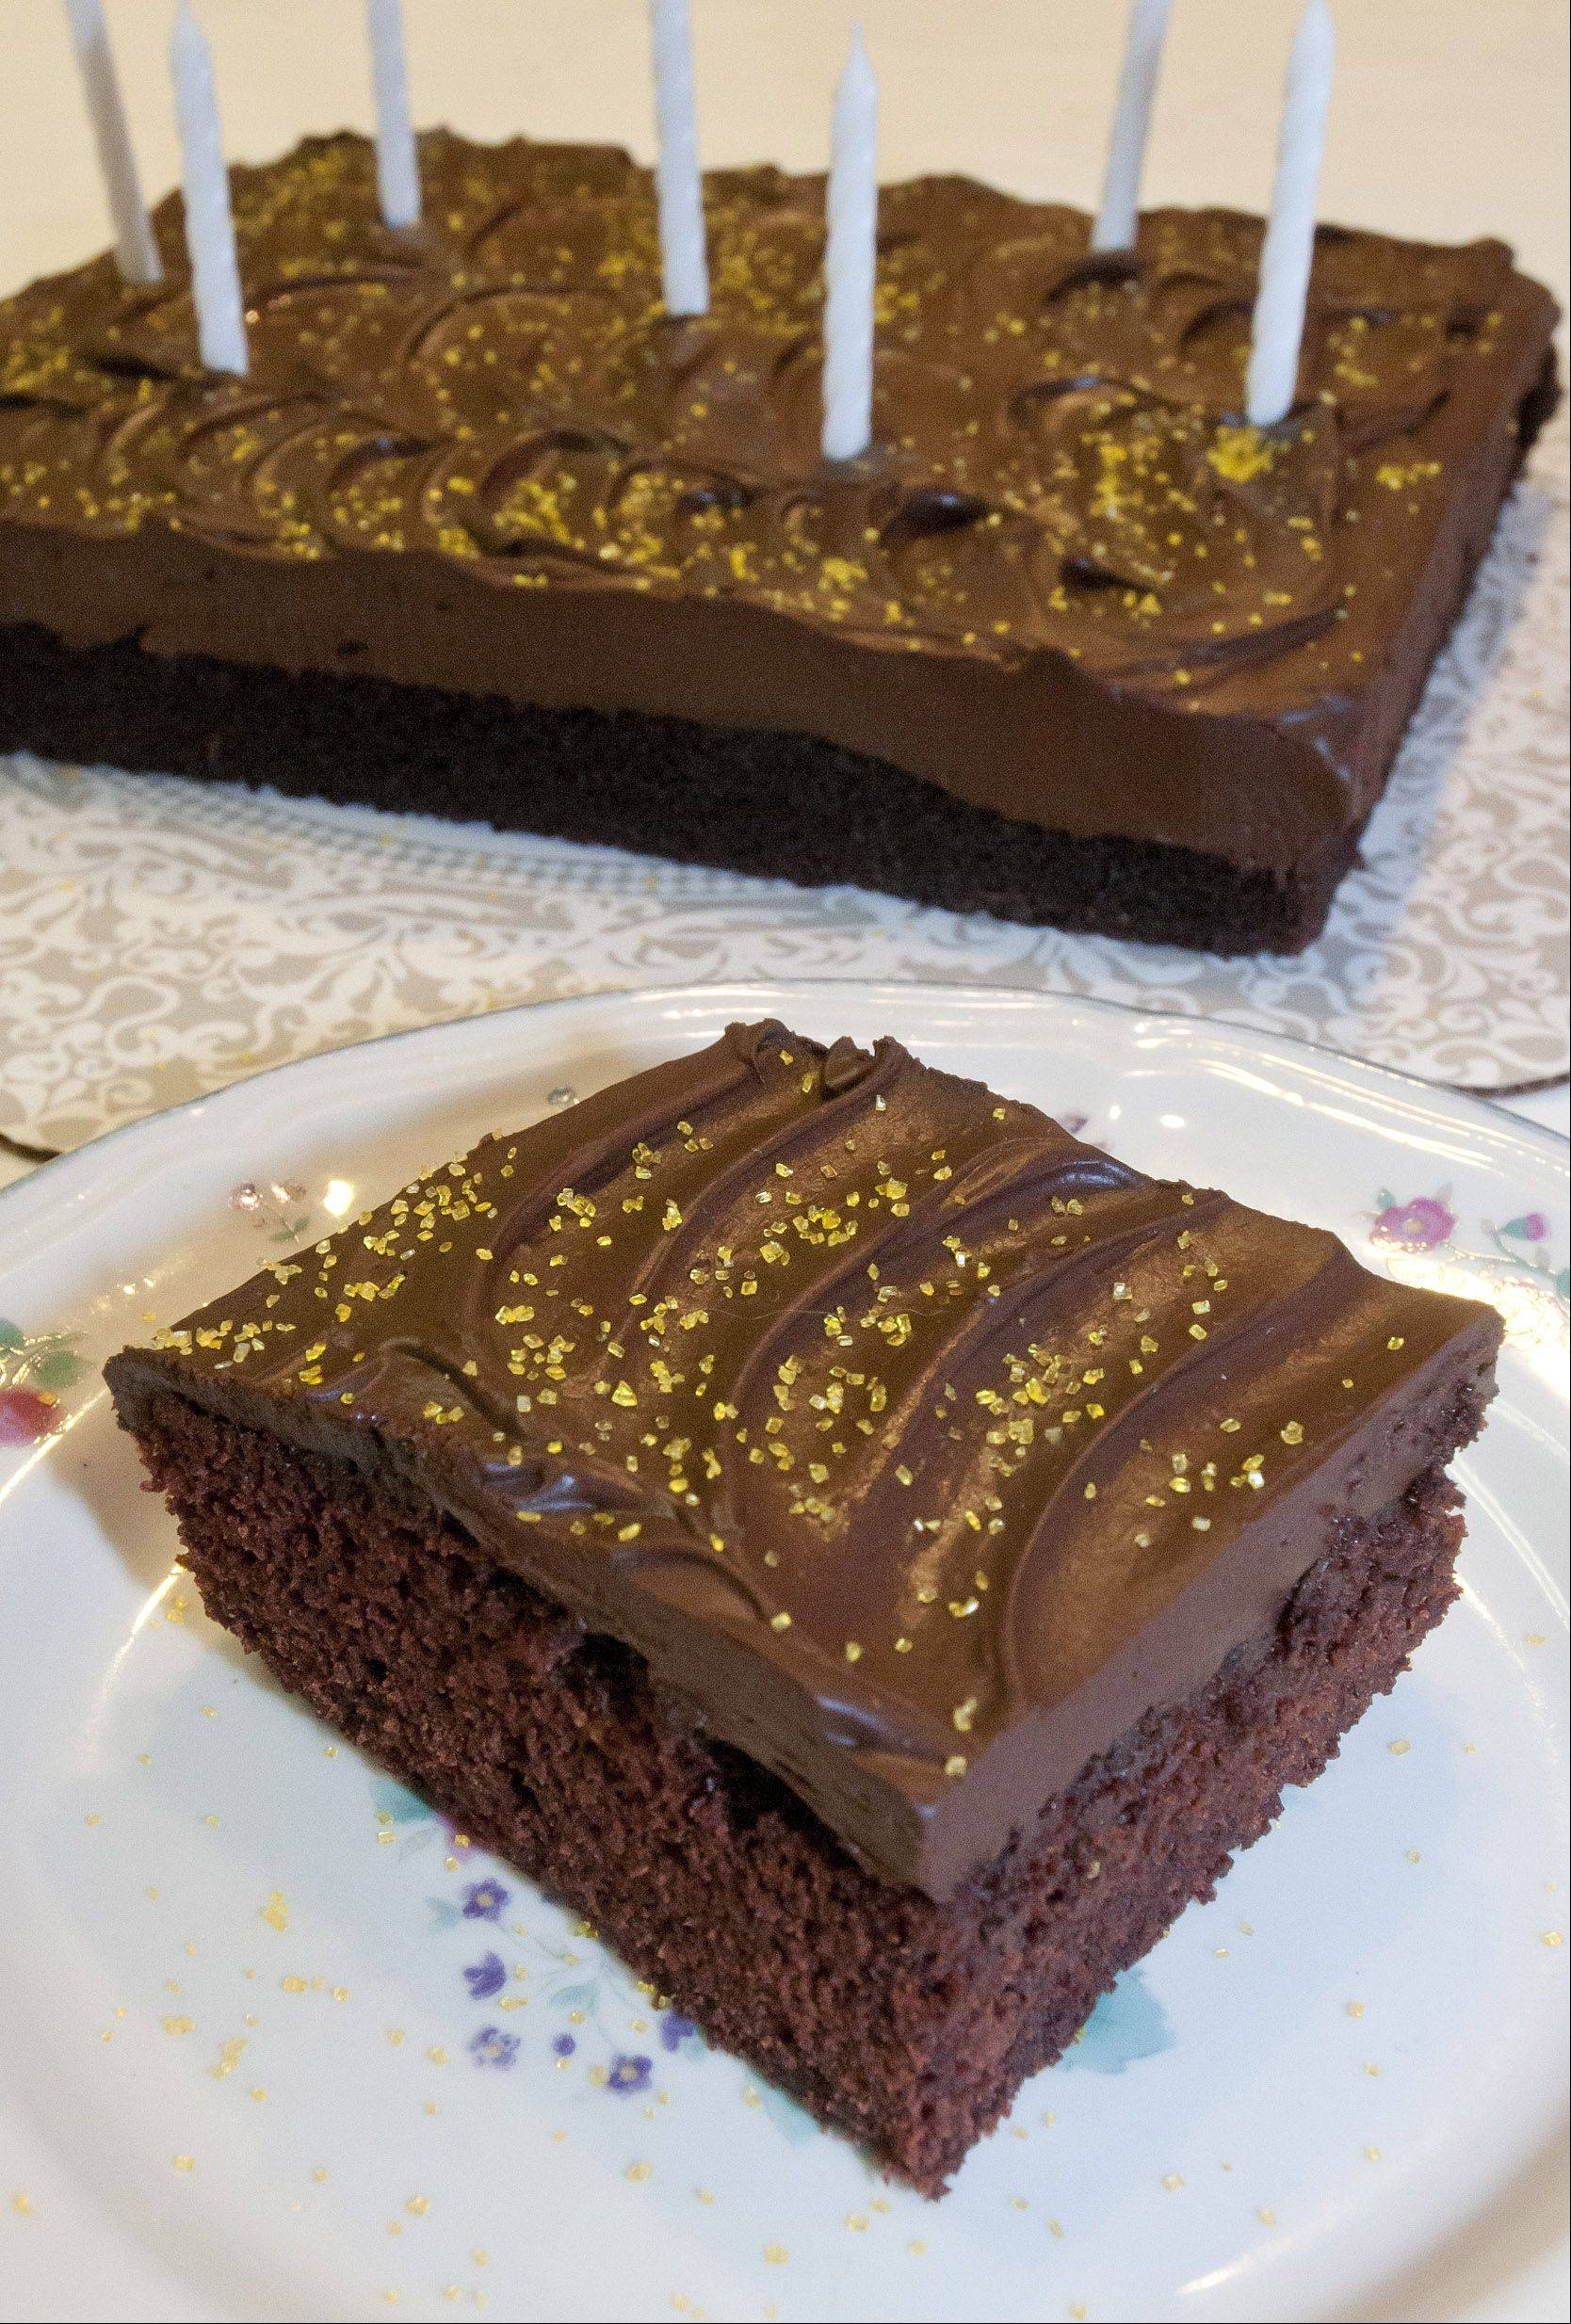 Baking secrets: Gluten-free chocolate cake for all to enjoy